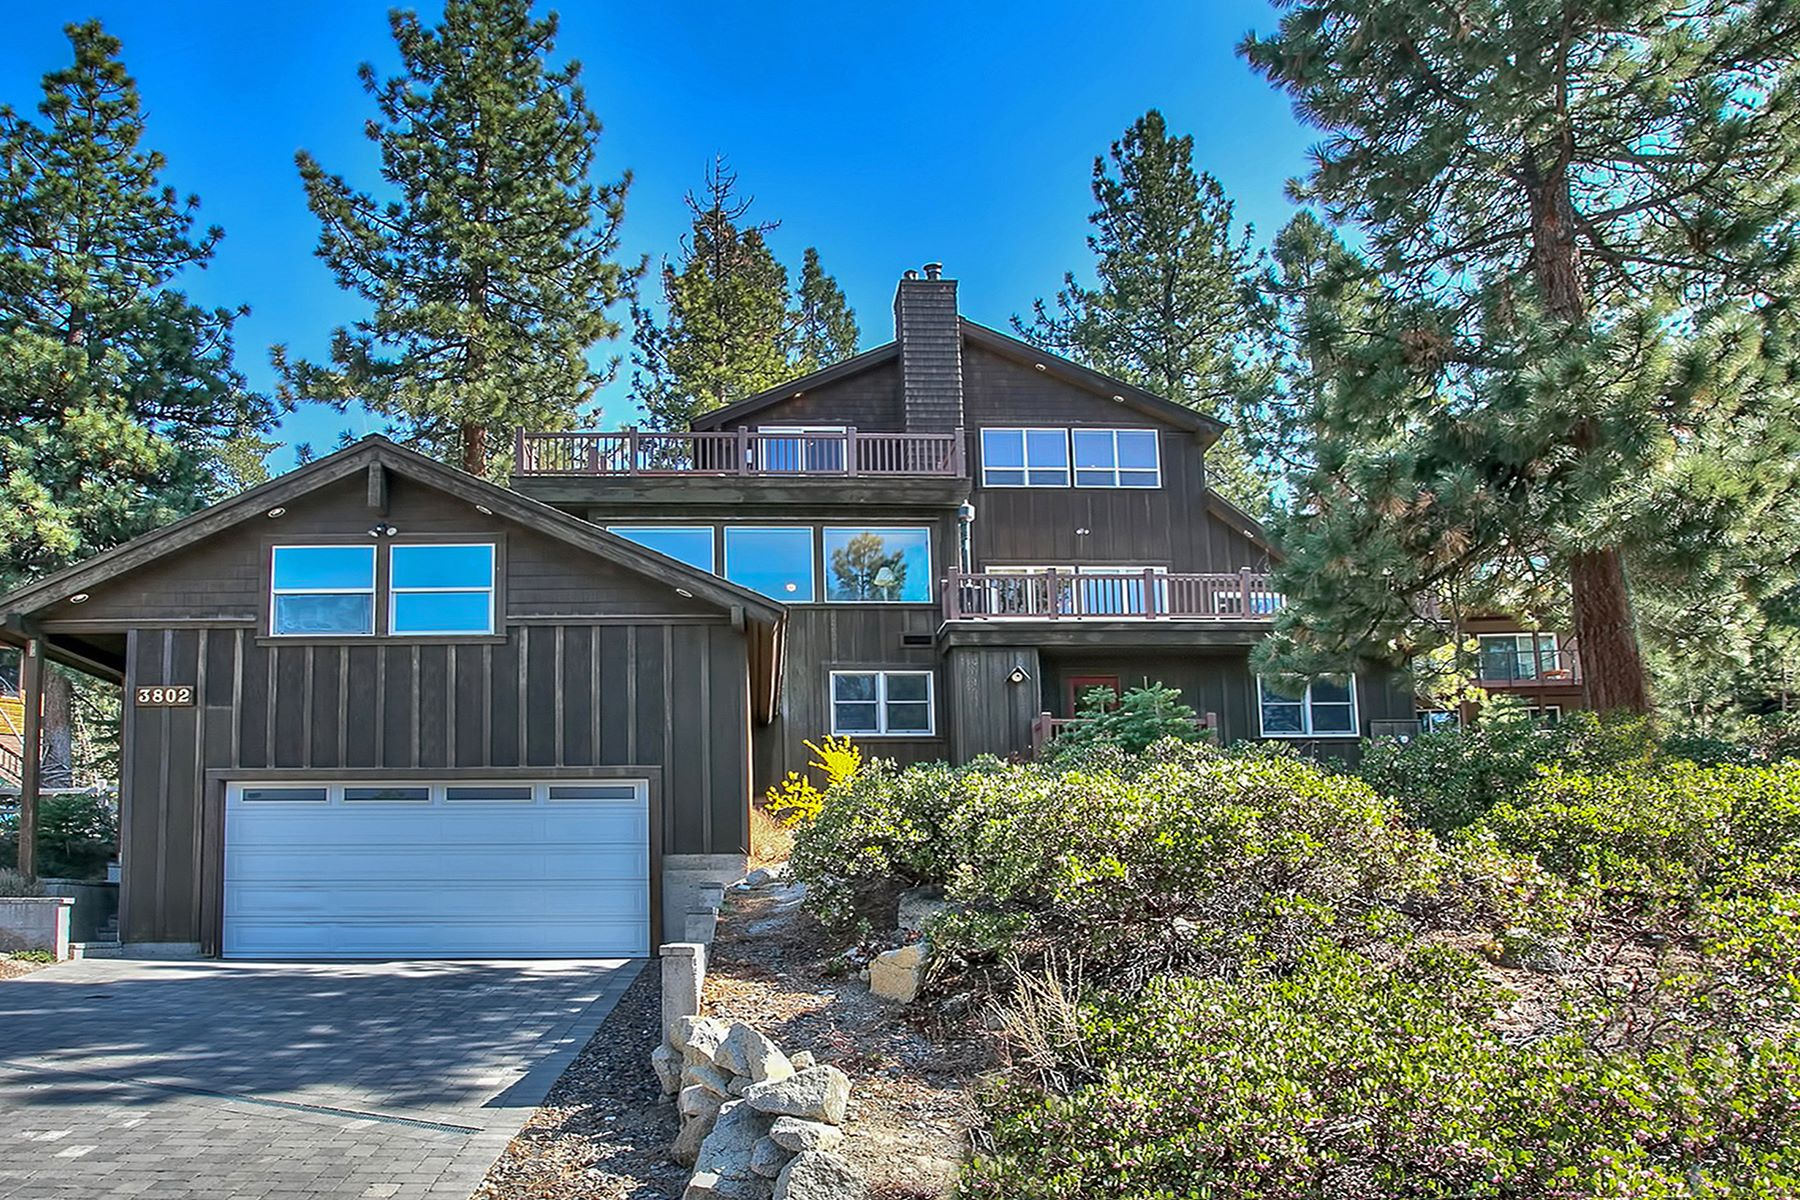 Maison unifamiliale pour l Vente à 3802 Lucinda Court 3802 Lucinda Court South Lake Tahoe, Californie 96150 États-Unis